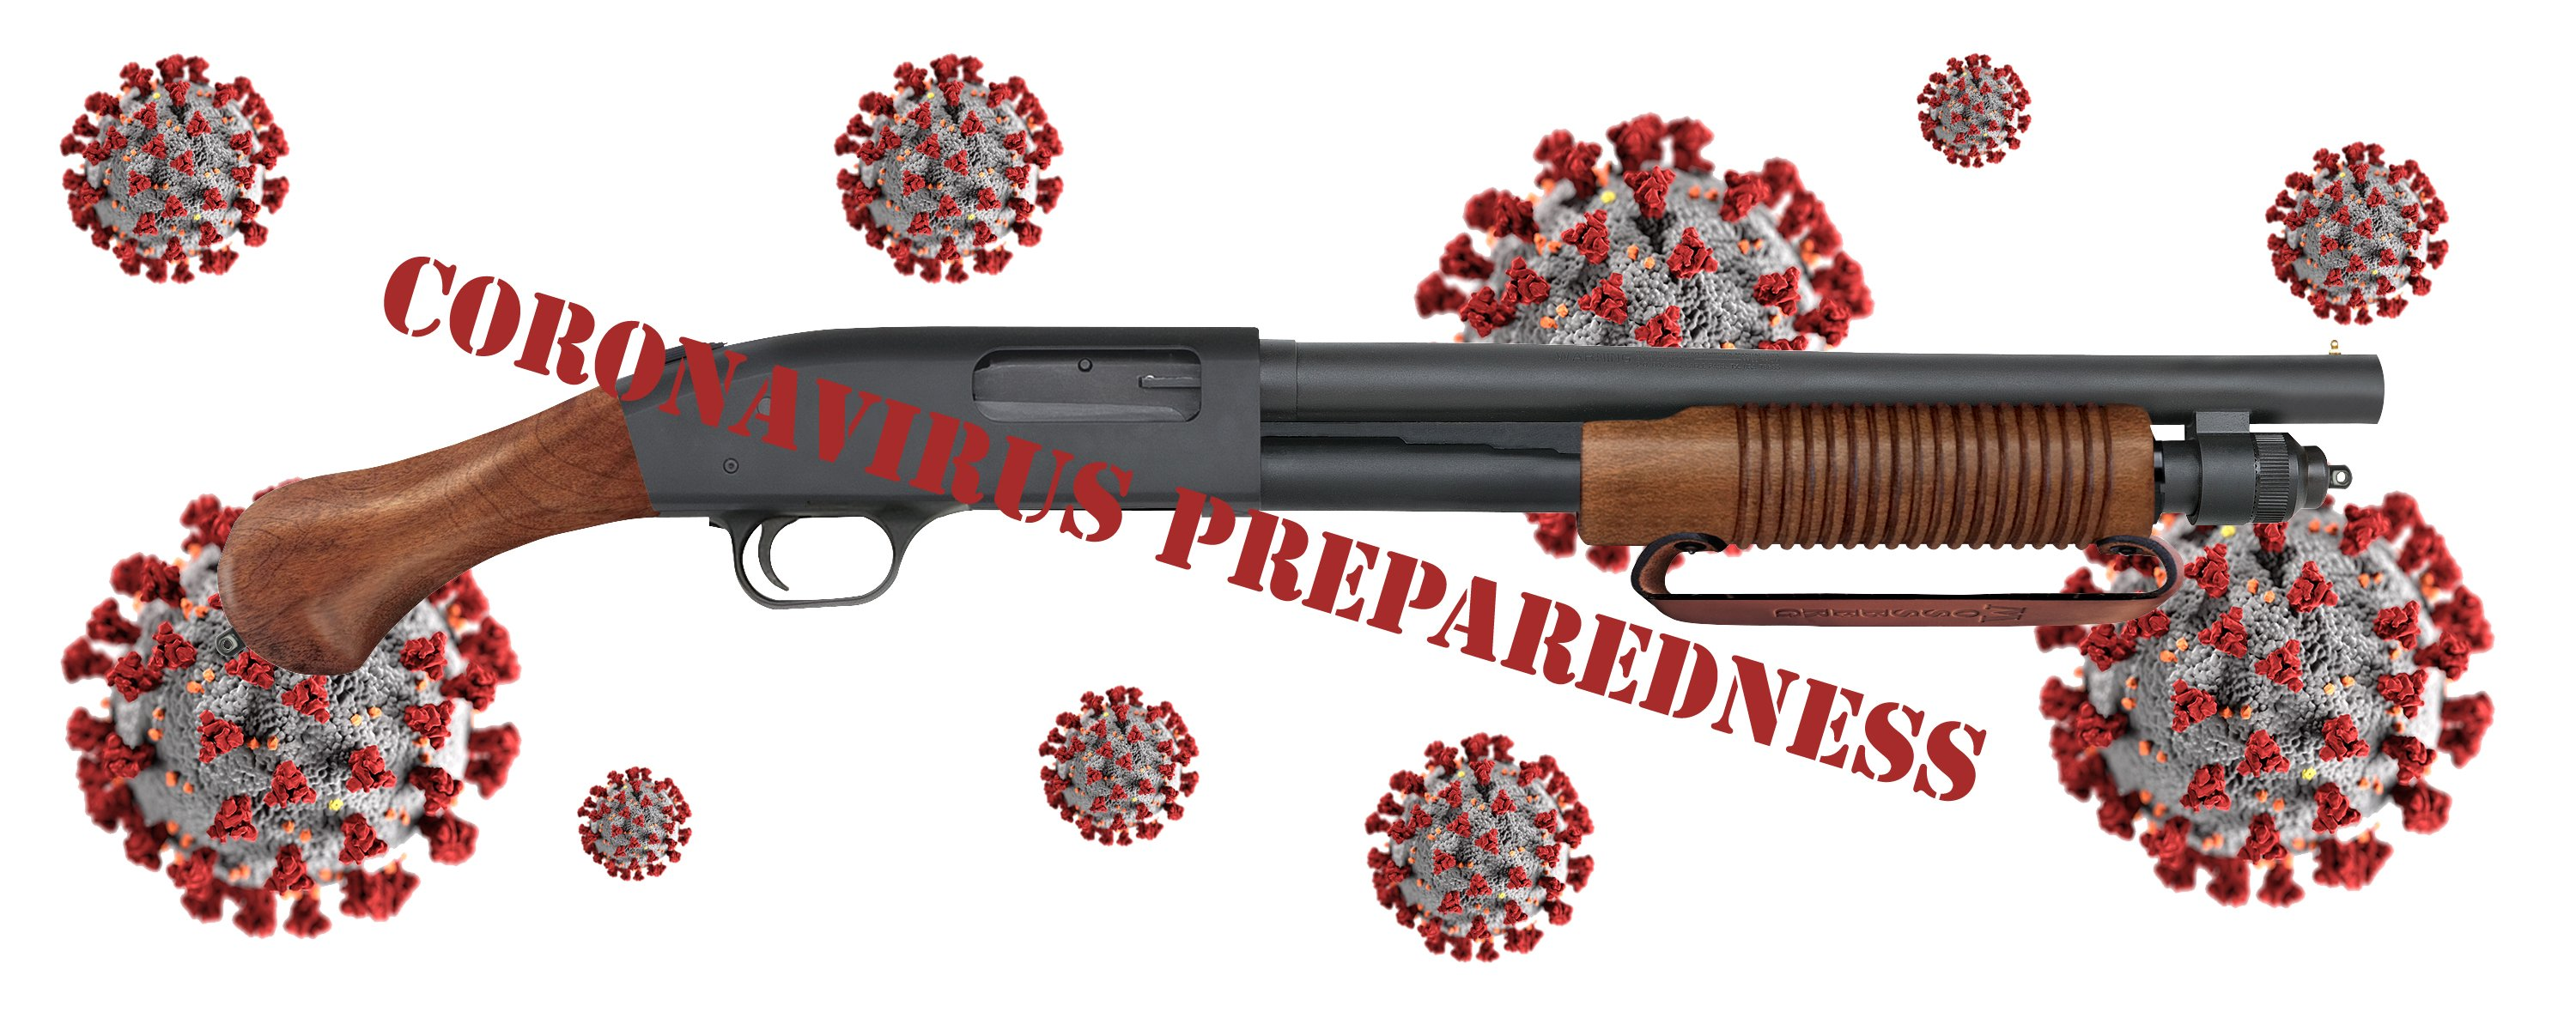 Coronavirus Preparedness: Top 5 Best Home Defense, Tactical Shotguns